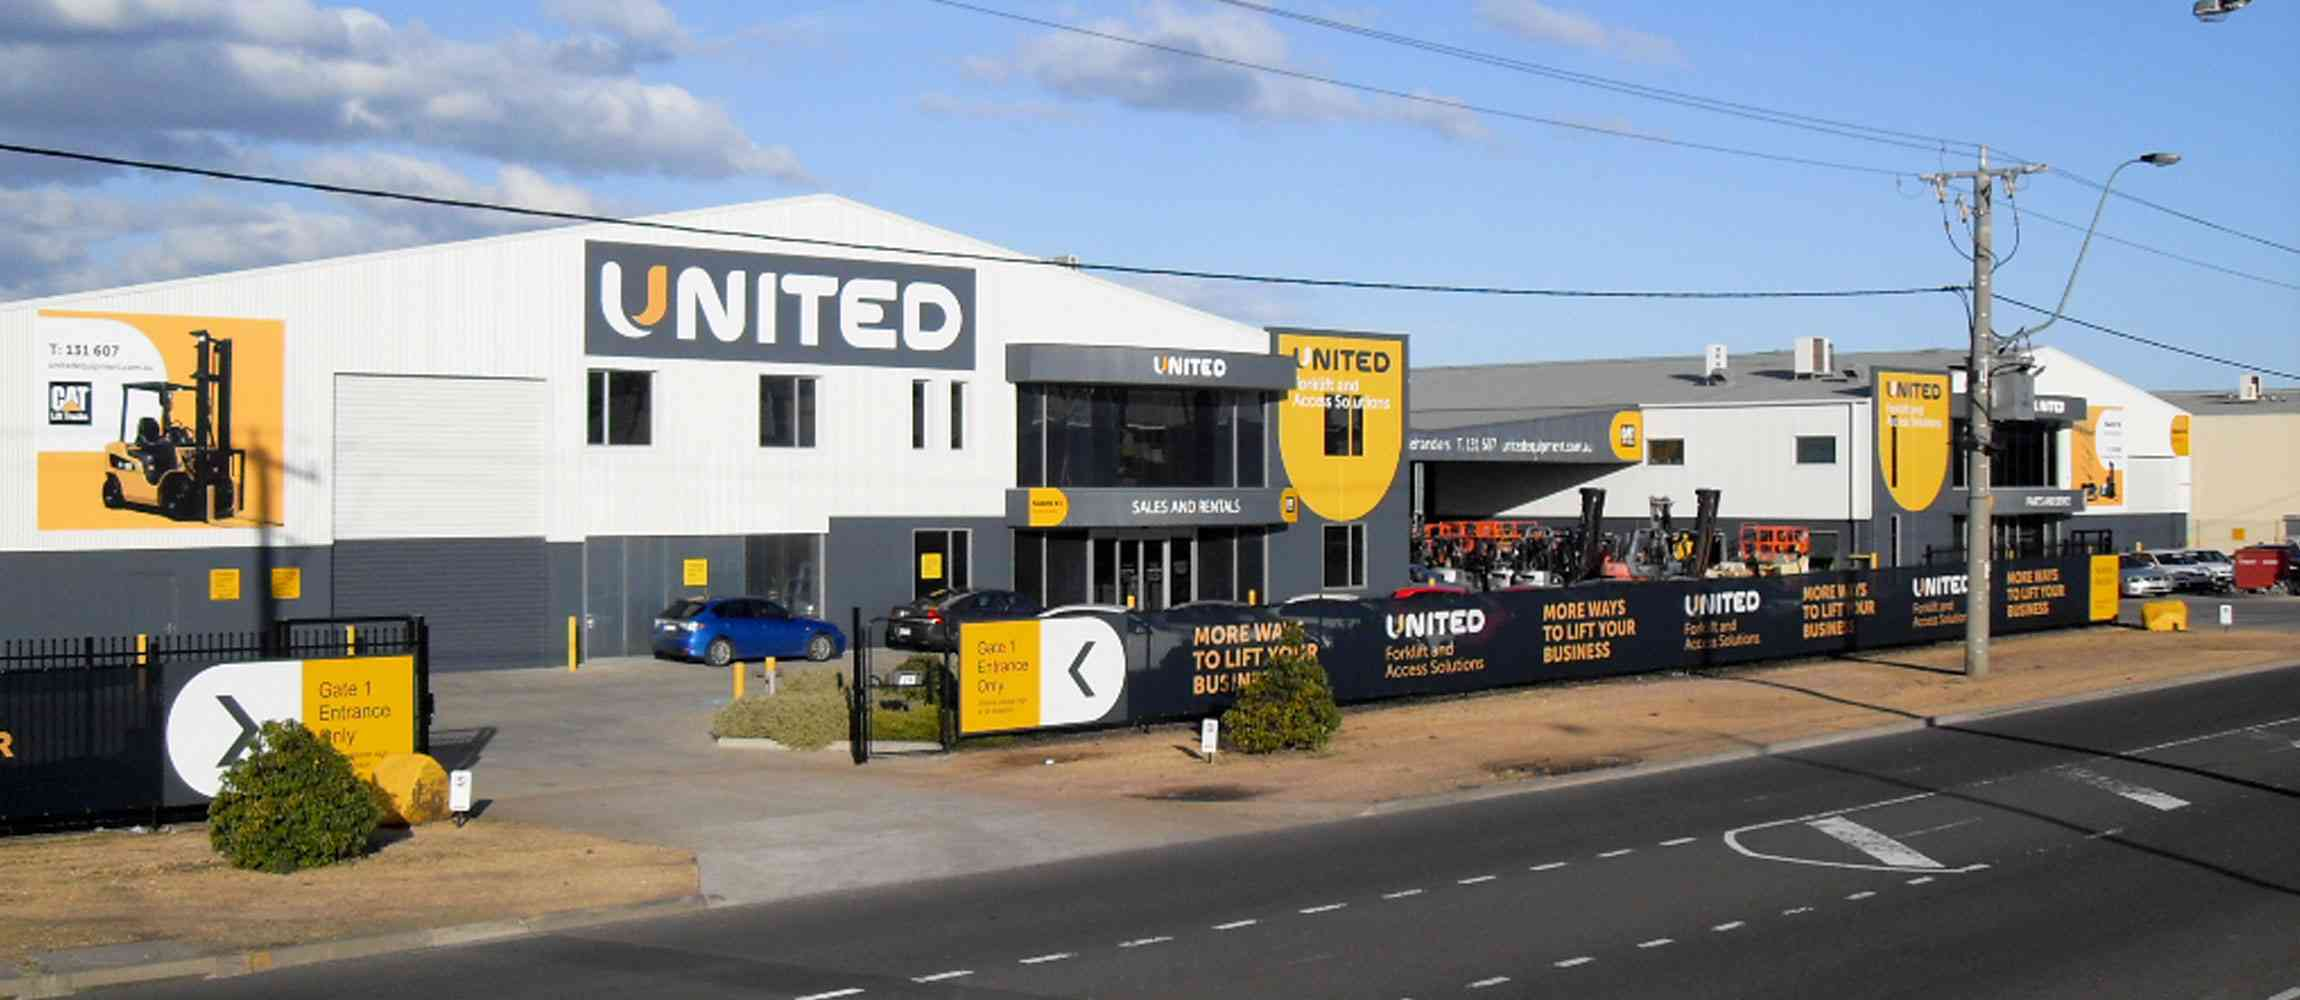 United Melbourne branch in the suburb of Altona